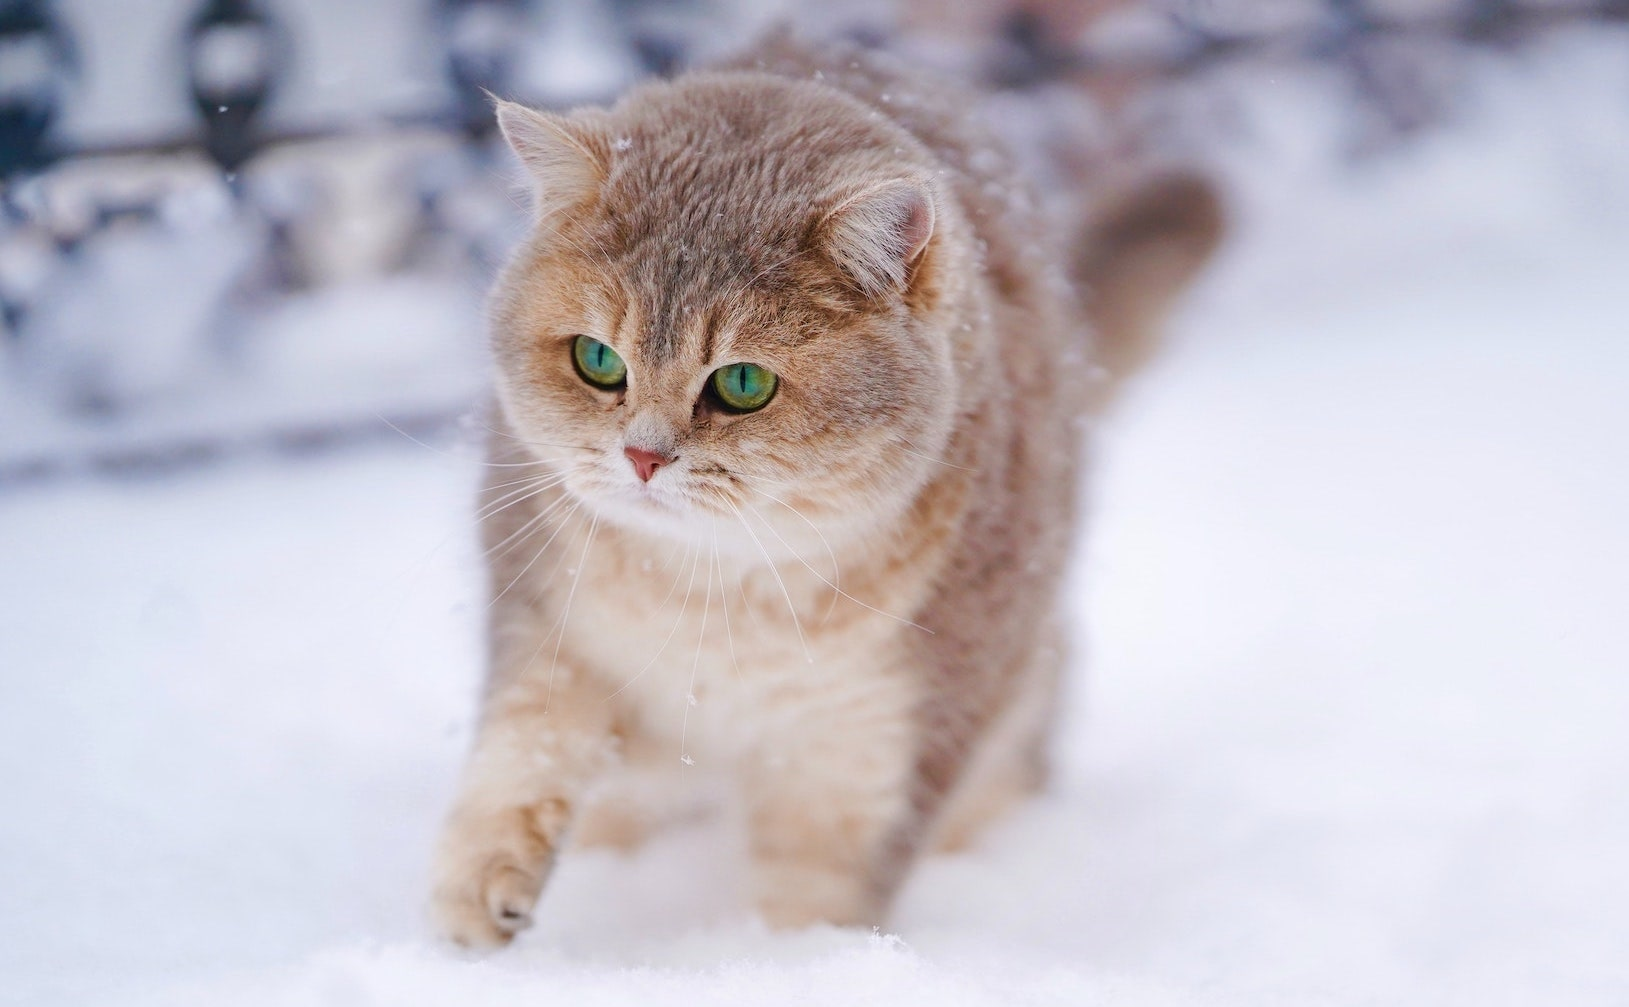 A ginger cat walks through the snow